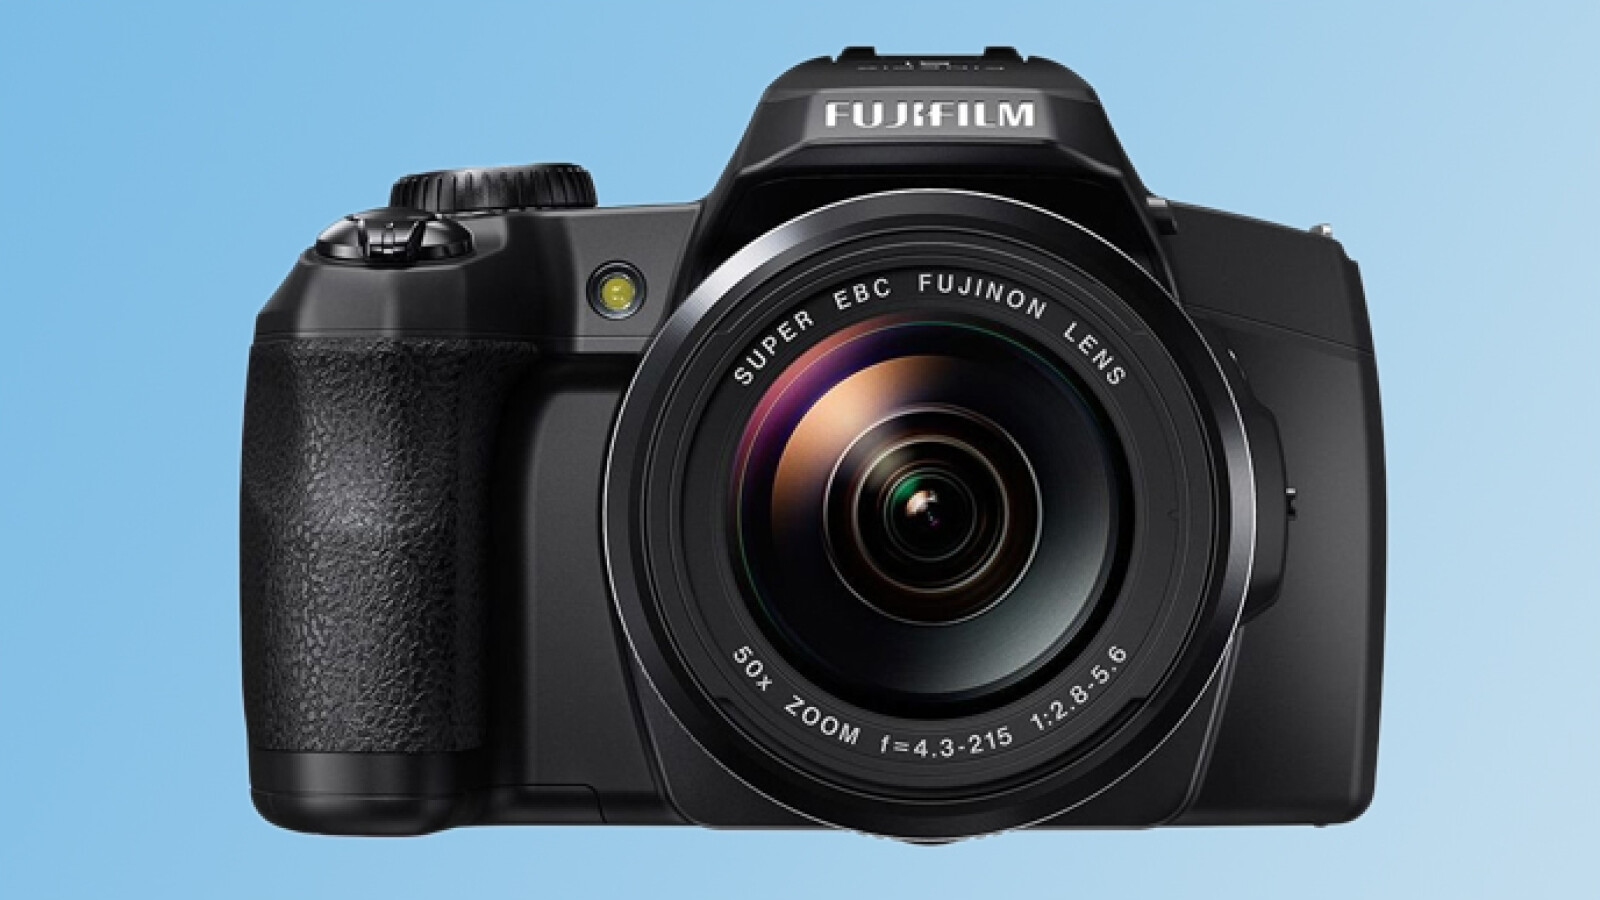 Fujifilm Finepix S1 Im Test Outdoor Bridgekamera Mit 50 Fach Zoom